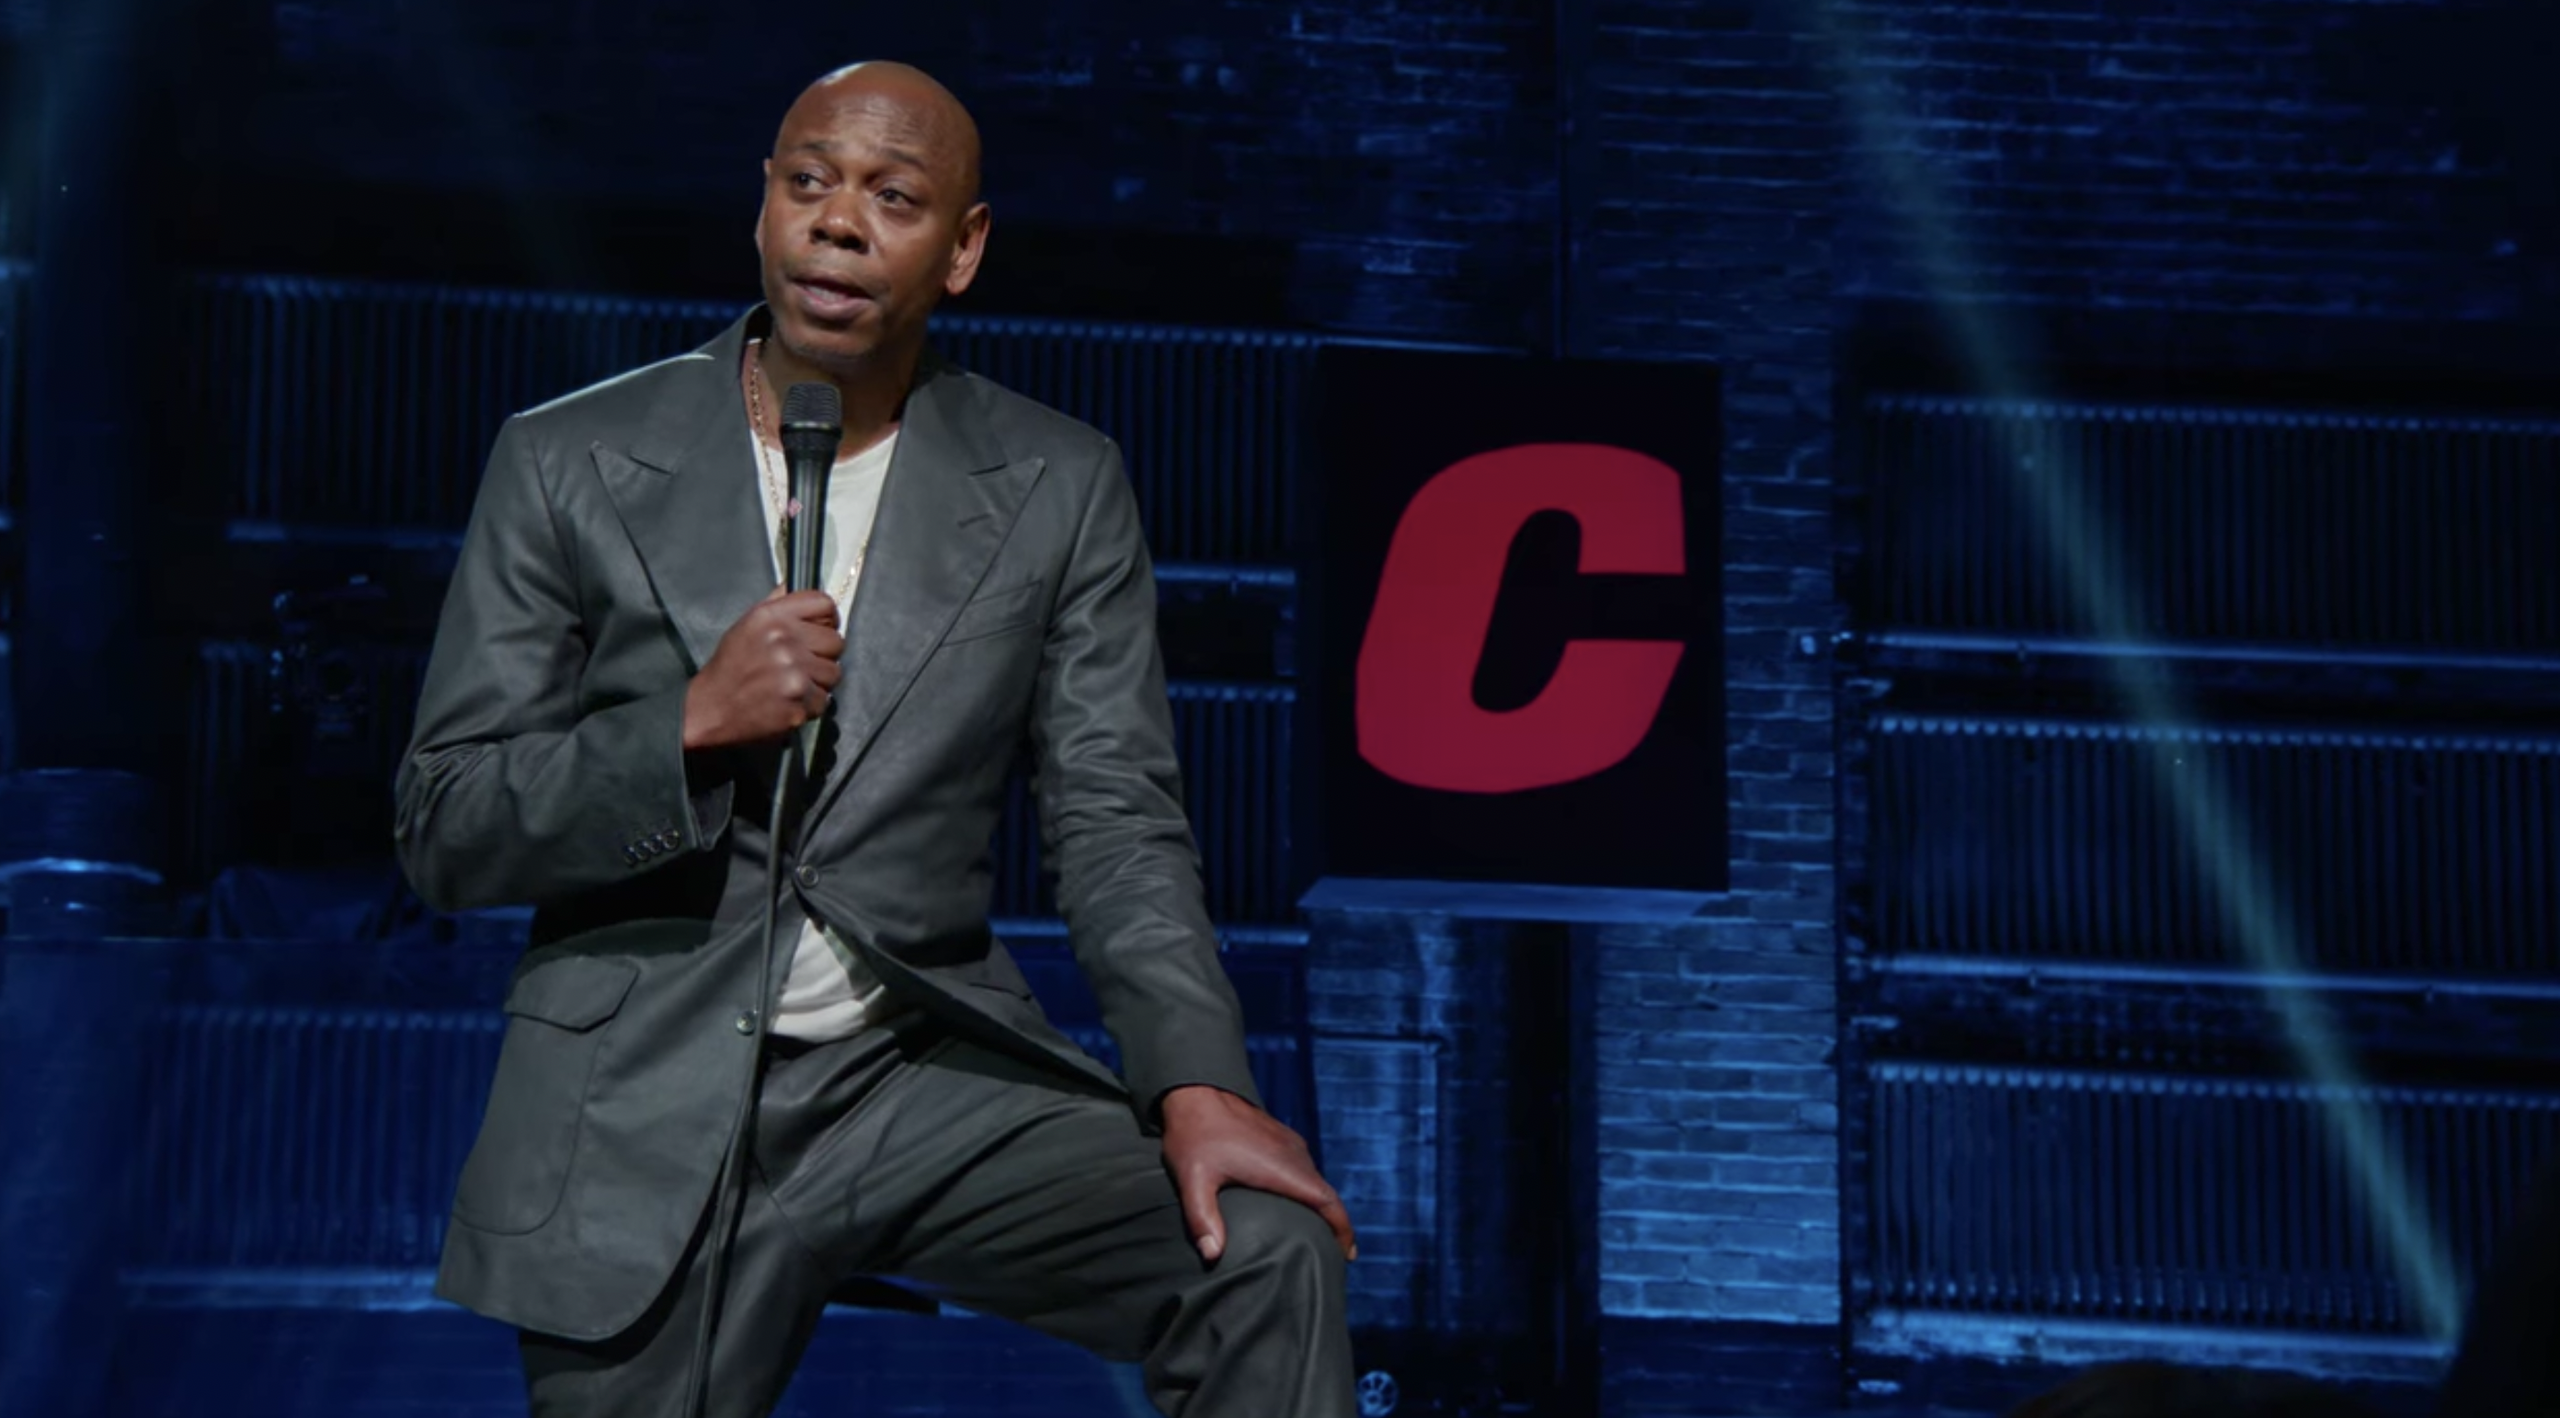 Dave Chappelle in his Netflix special The Closer